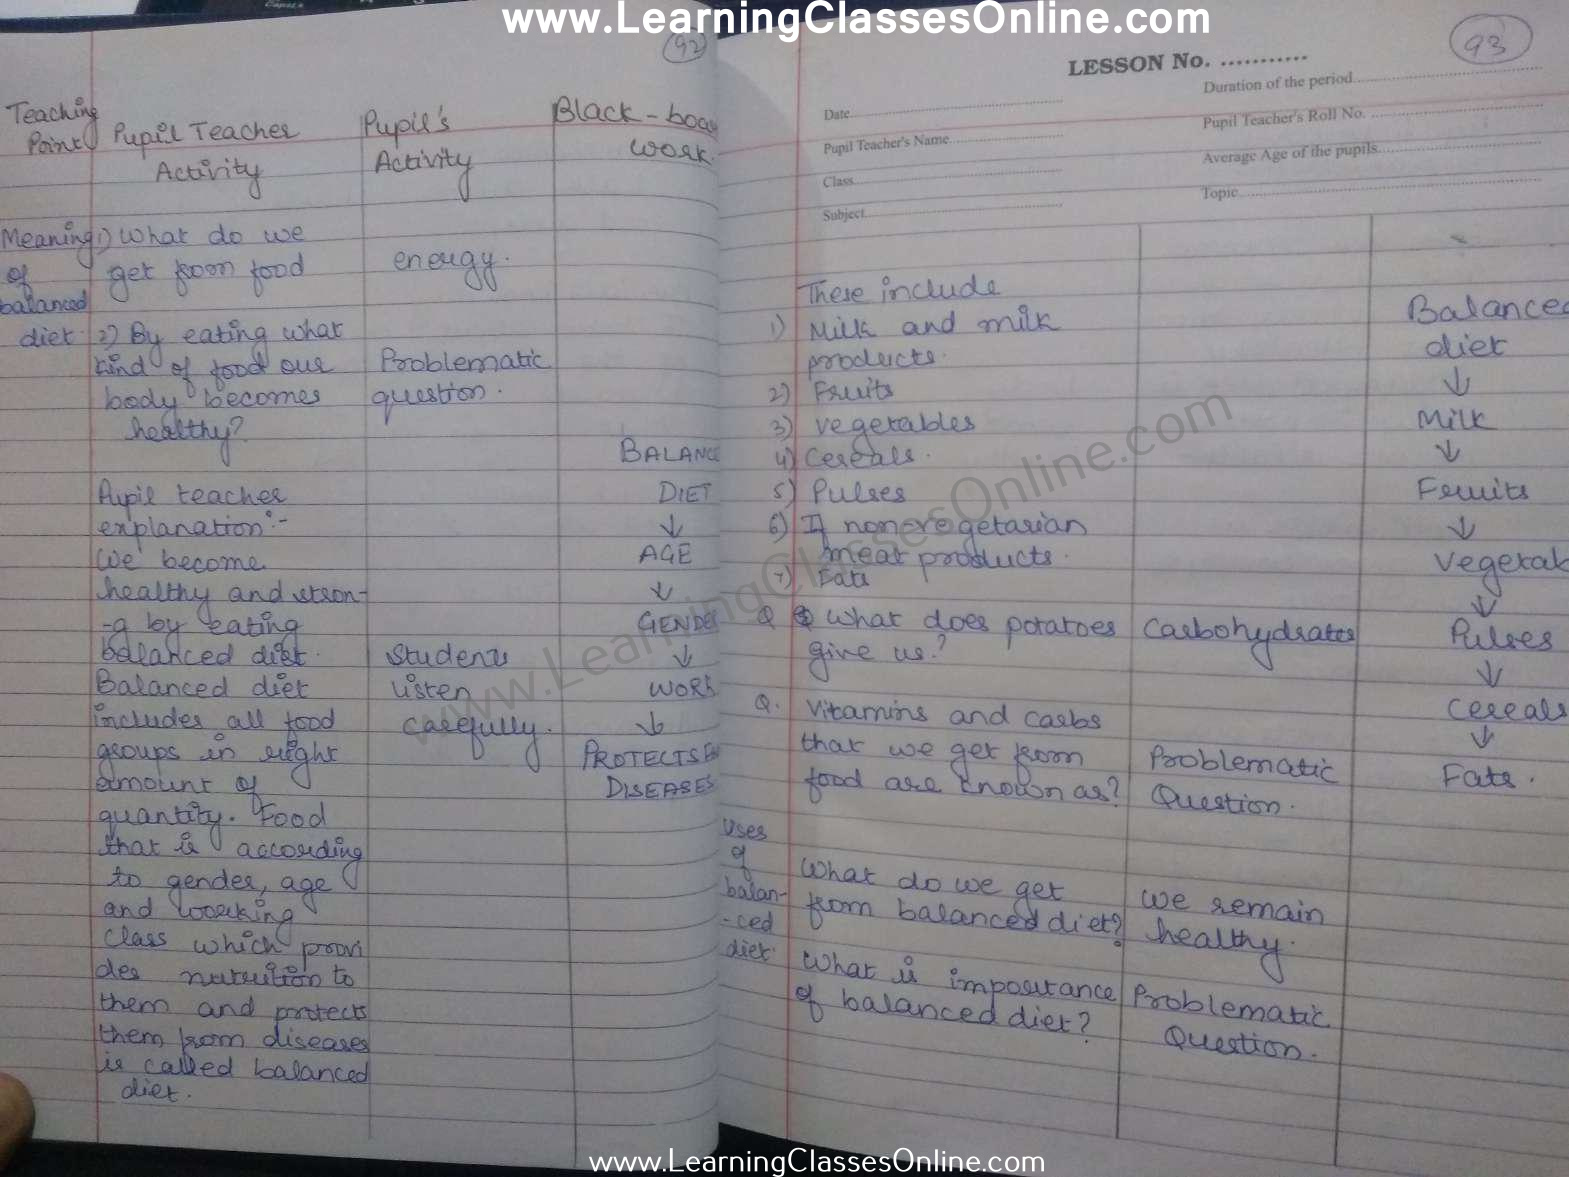 balanced diet lesson plan format